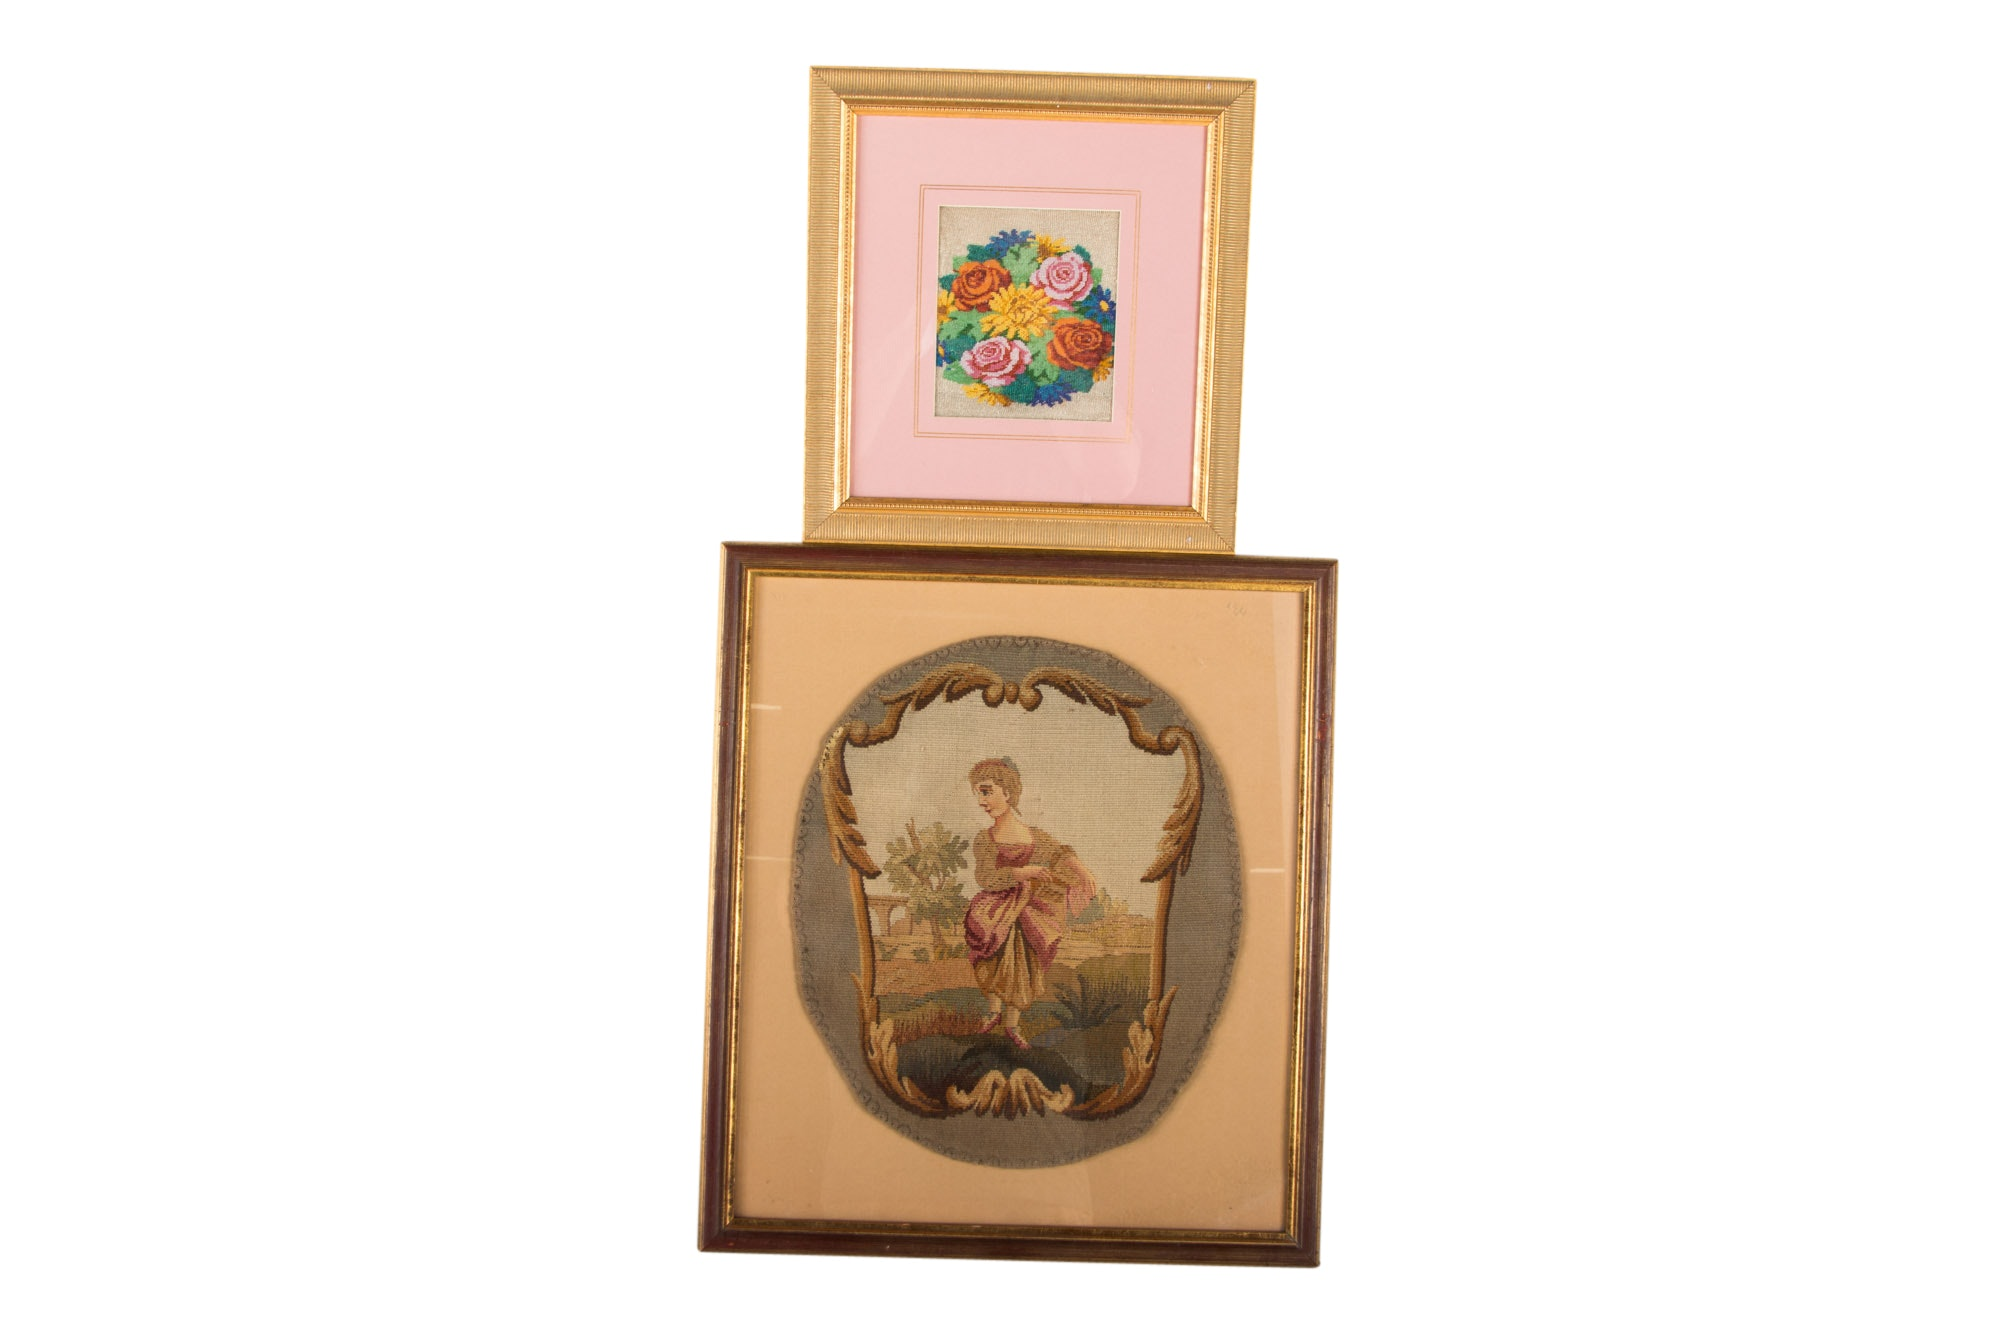 Two framed needlepoint panels, 20th Century